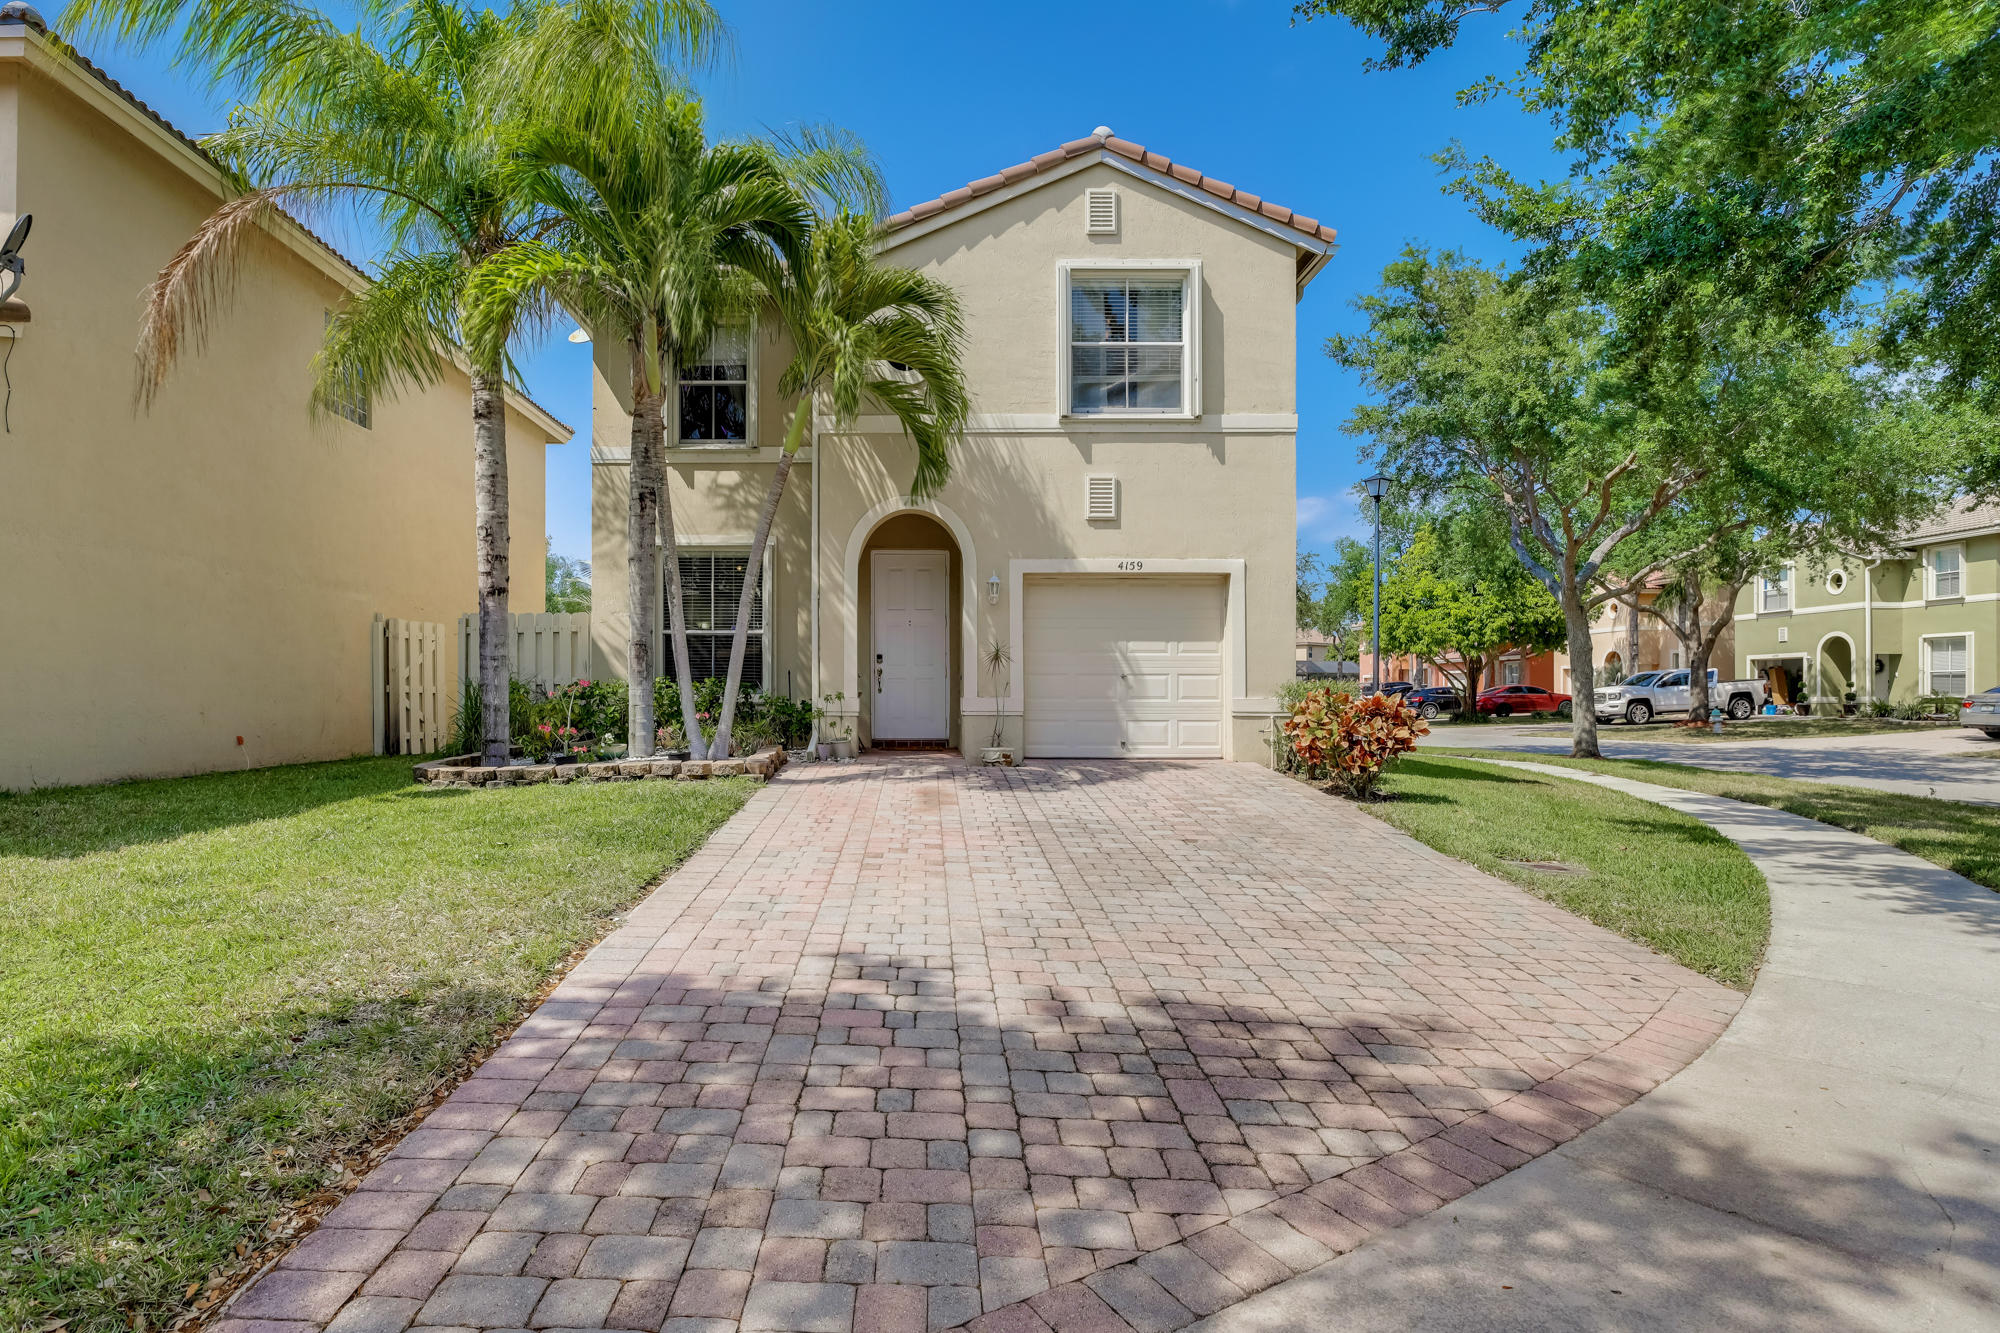 Home for sale in Briger Pars West Palm Beach Florida